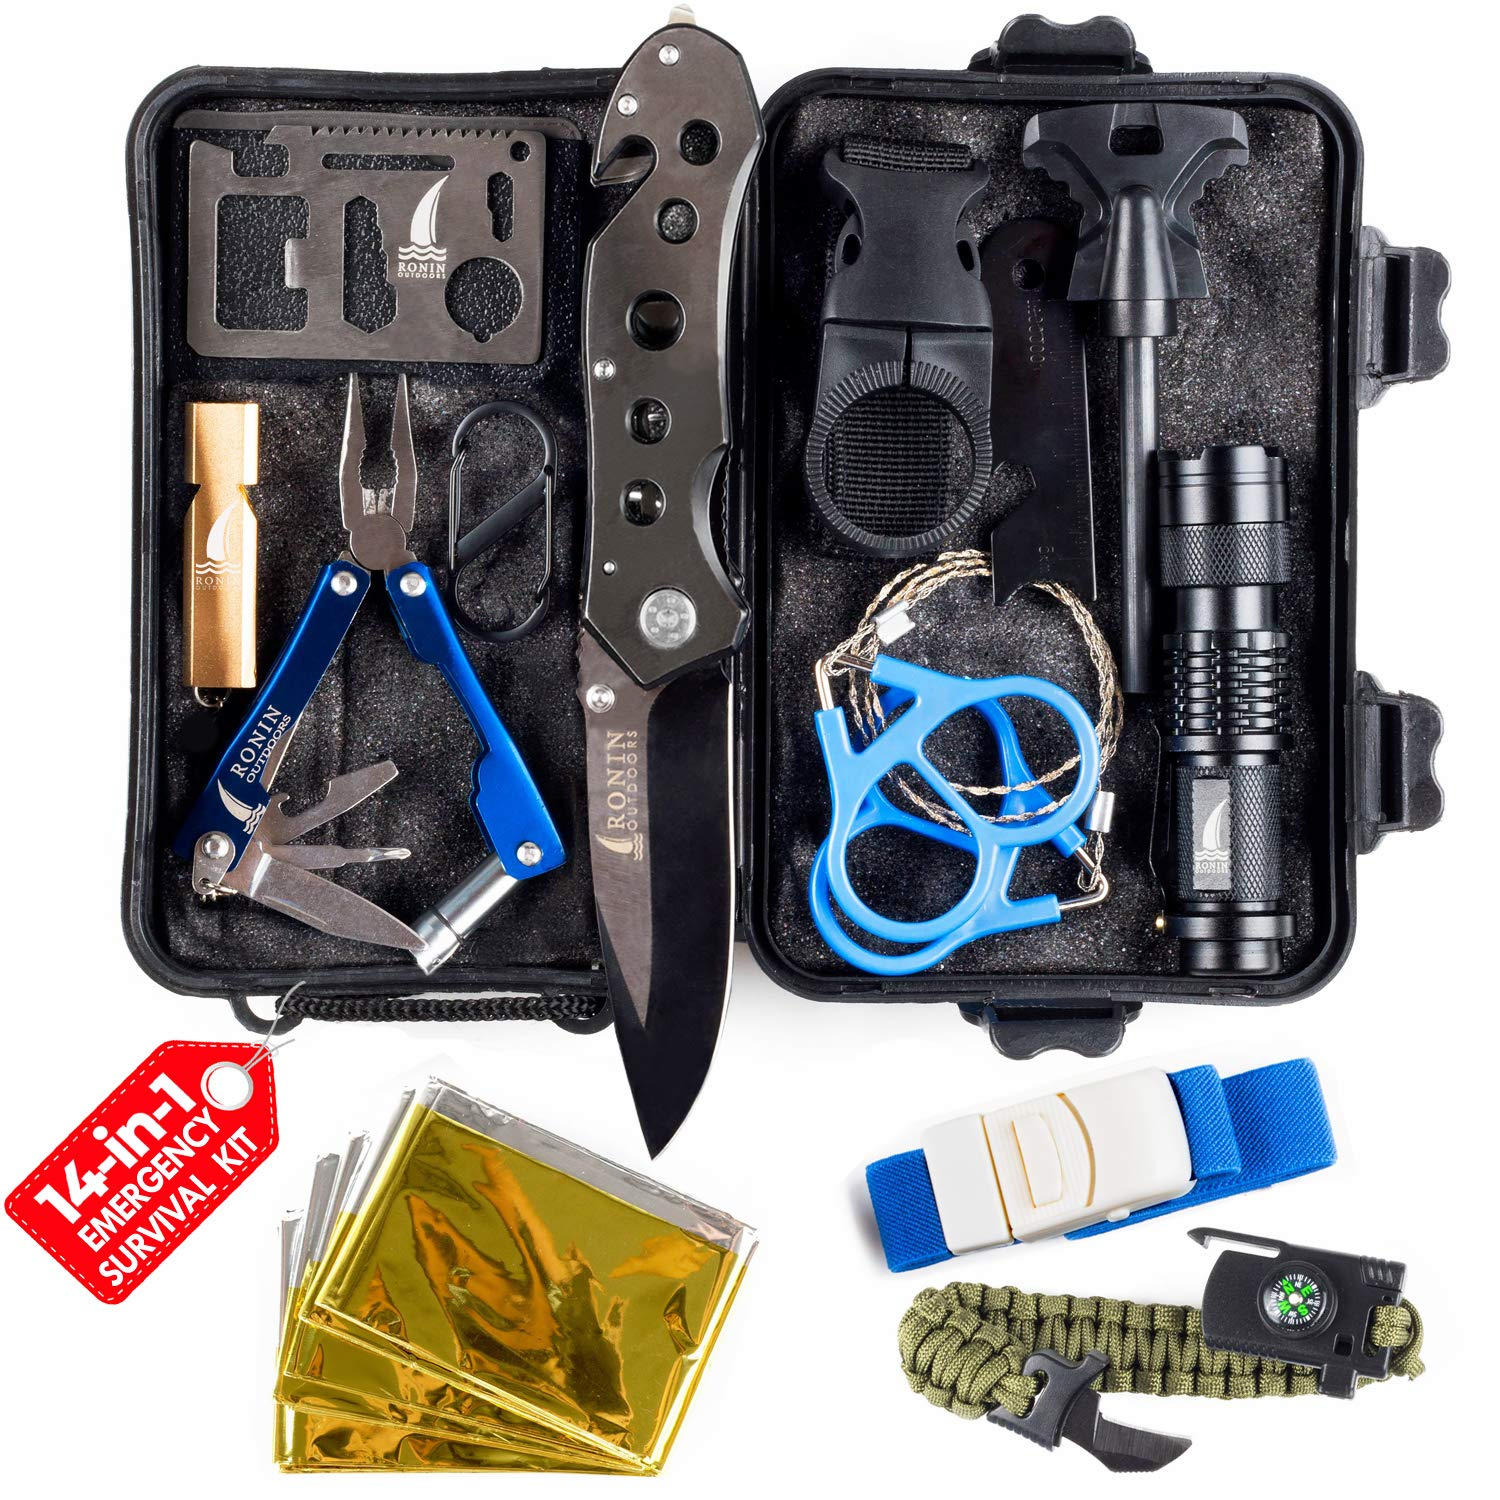 Survival Kit Tactical Camping Gear 14 in 1 Backpack Hiking Outdoor Gifts for Men and Women - Car Emergency EDC Tools - SOS Earthquake Kit Disaster Preparedness